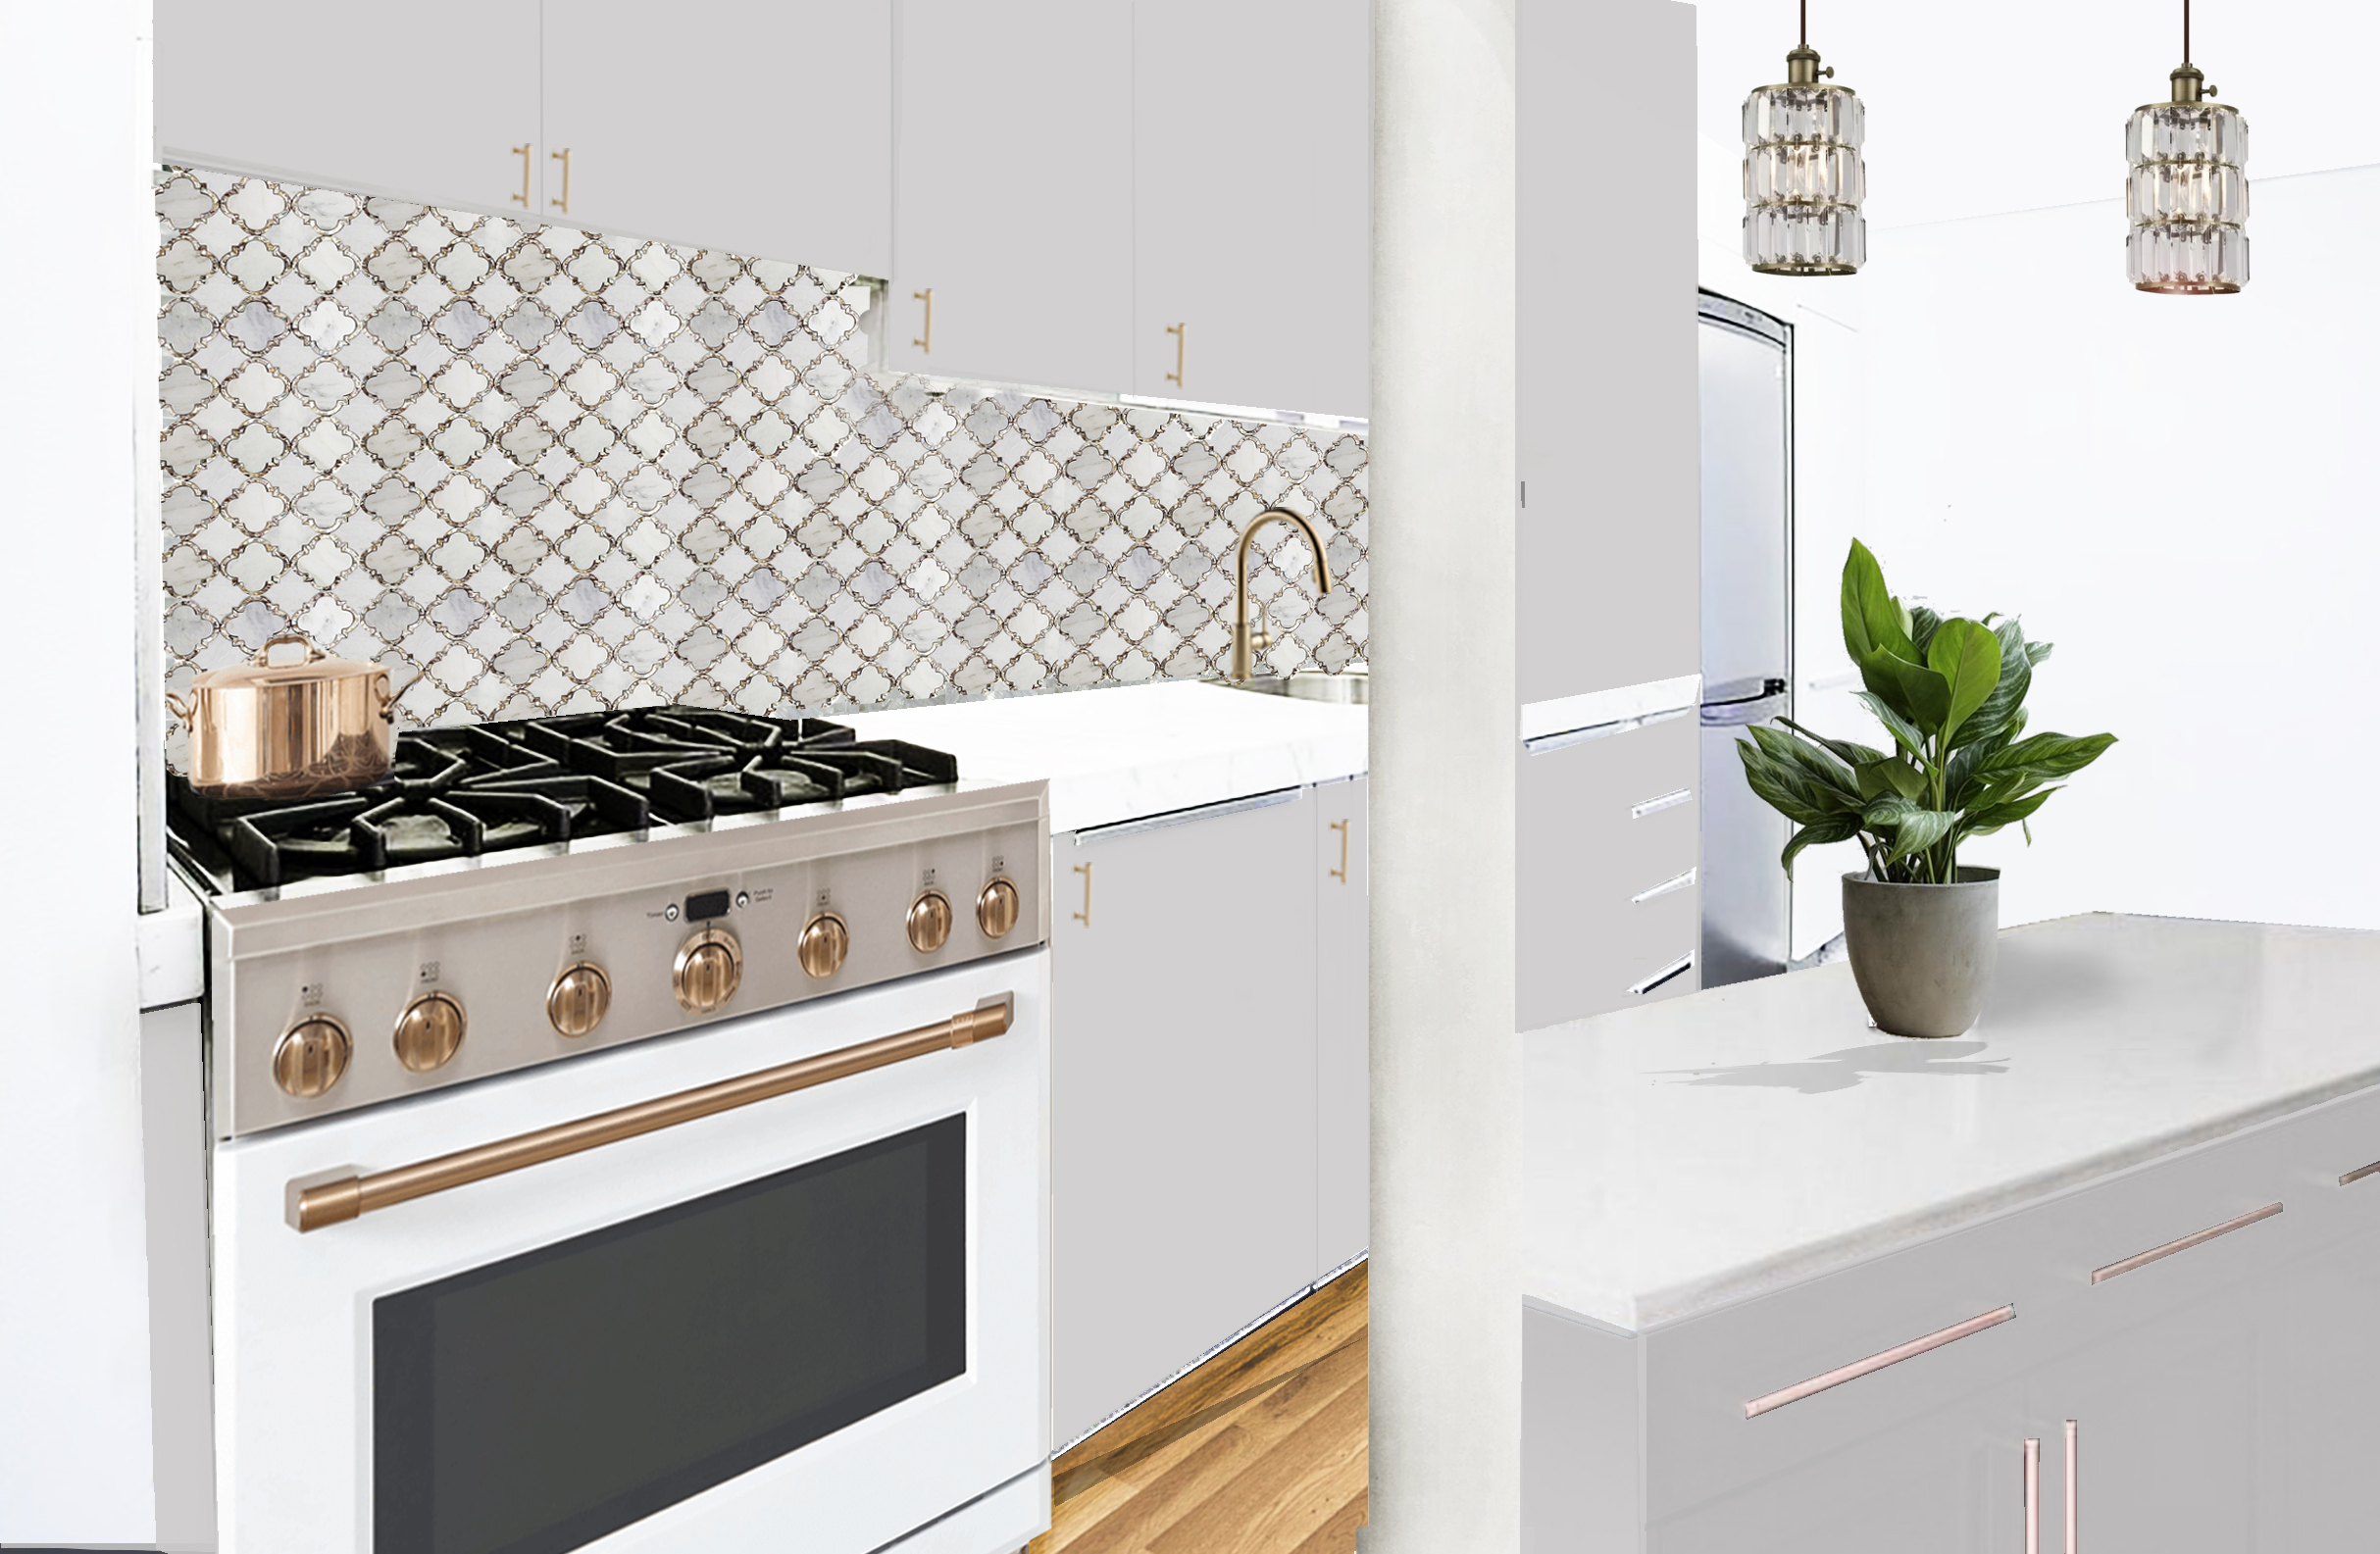 monica kitchen marble 2.jpg